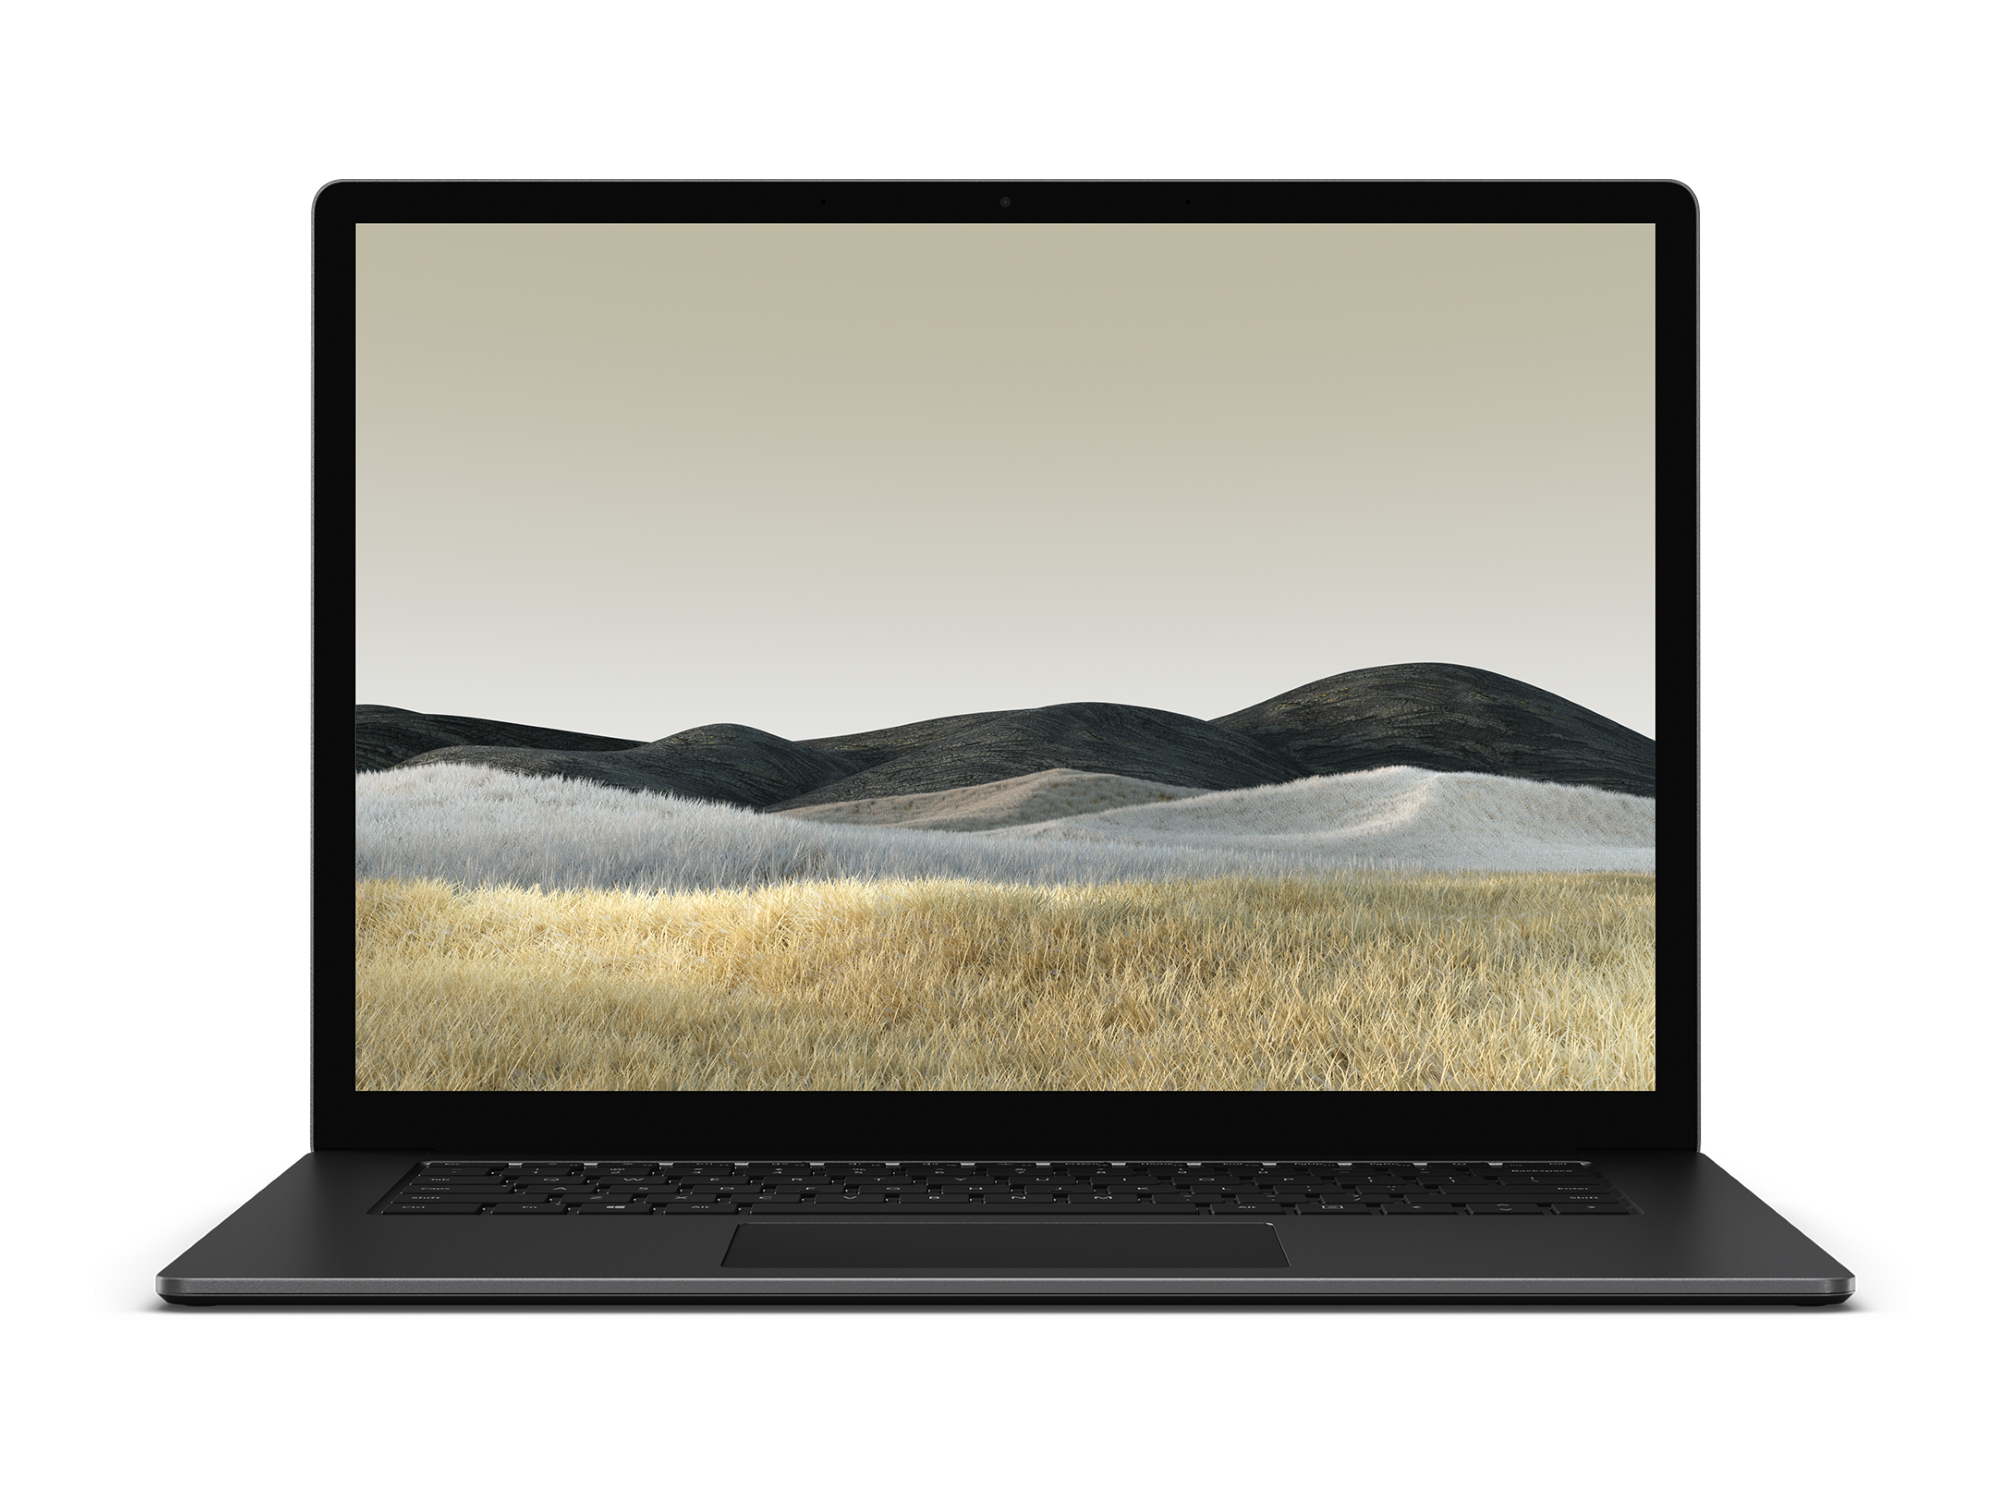 "Microsoft Surface Laptop 3 Amd Ryzen 5 3580U/8GB/256GB SSD/15"" Pixel Sense/Windows 10/Black Metal"